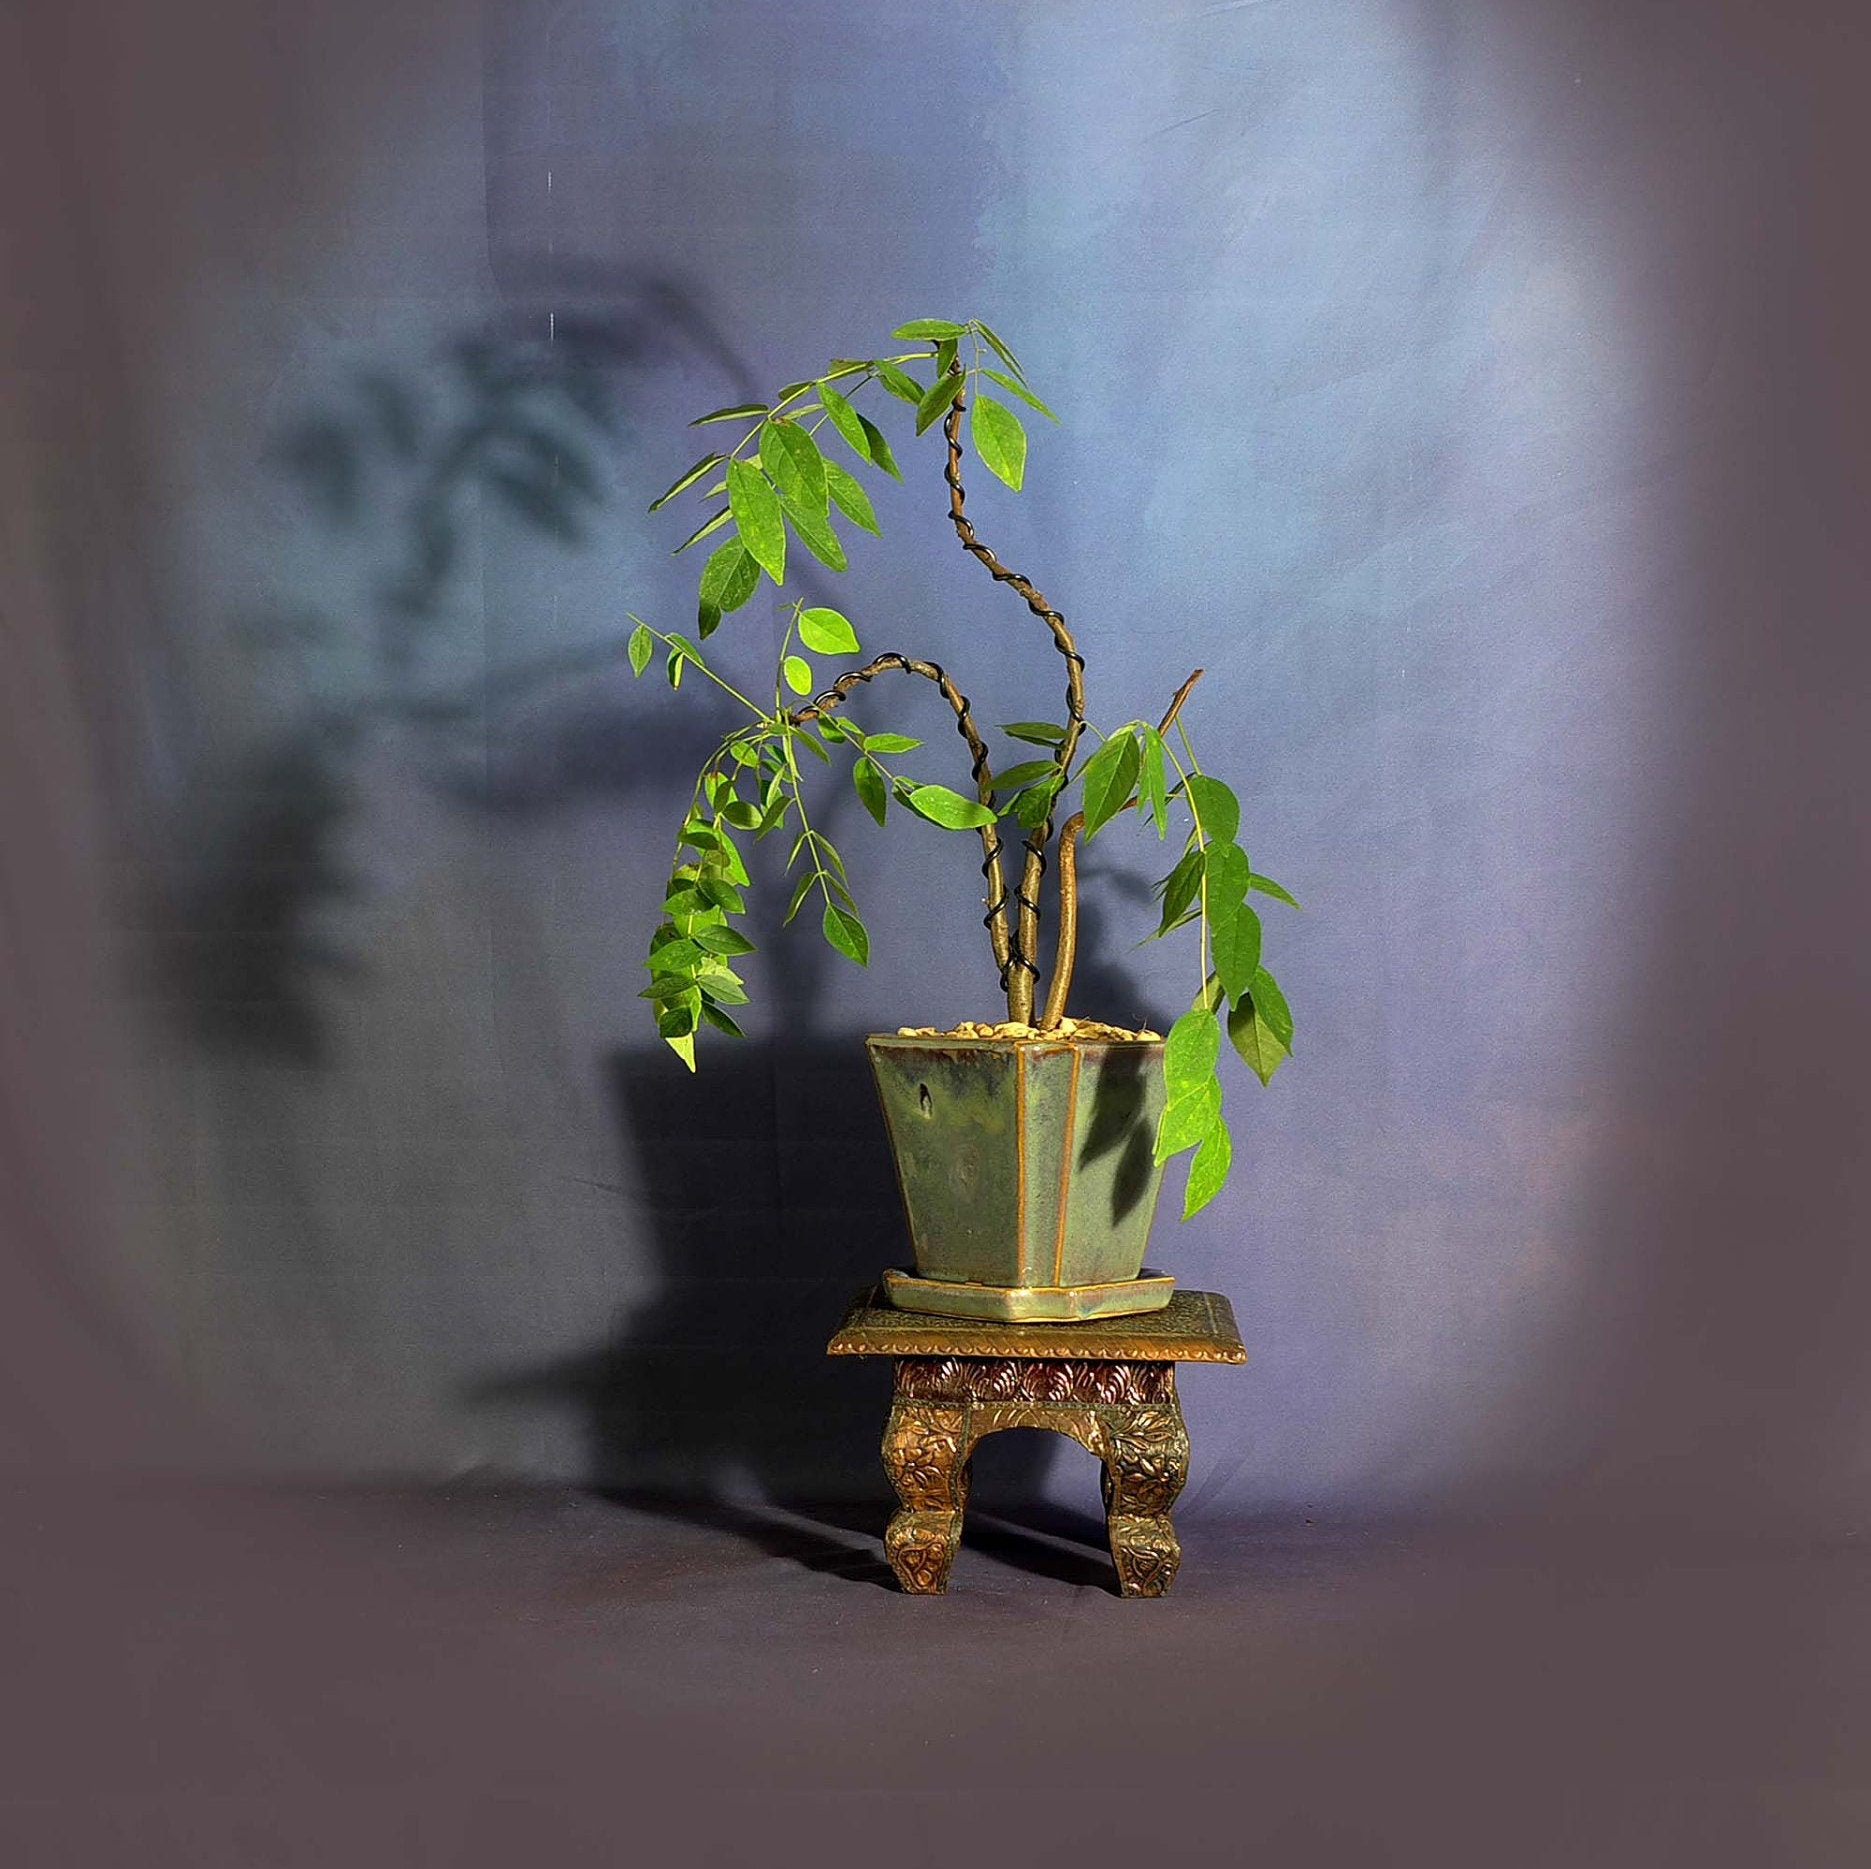 Japanese Wisteria Bonsai Tree Hanging Bloom Collection From Livebonsaitree